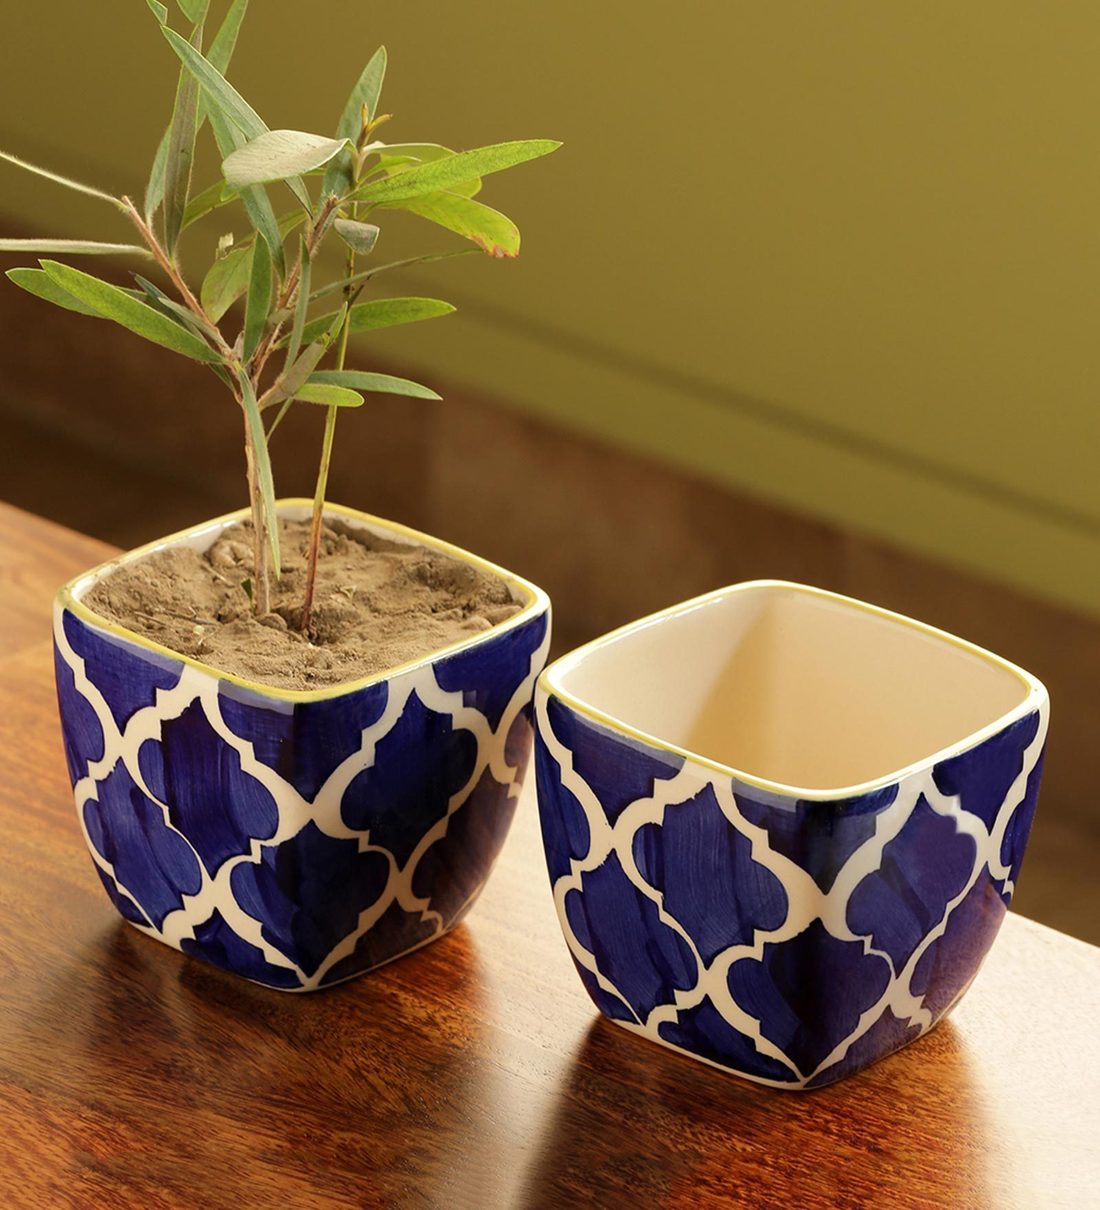 Buy Moroccan Roots Handpainted Ceramic Pot Set Of 2 By Exclusivelane Online Desk Pots Pots Planters Home Decor Pepperfry Product